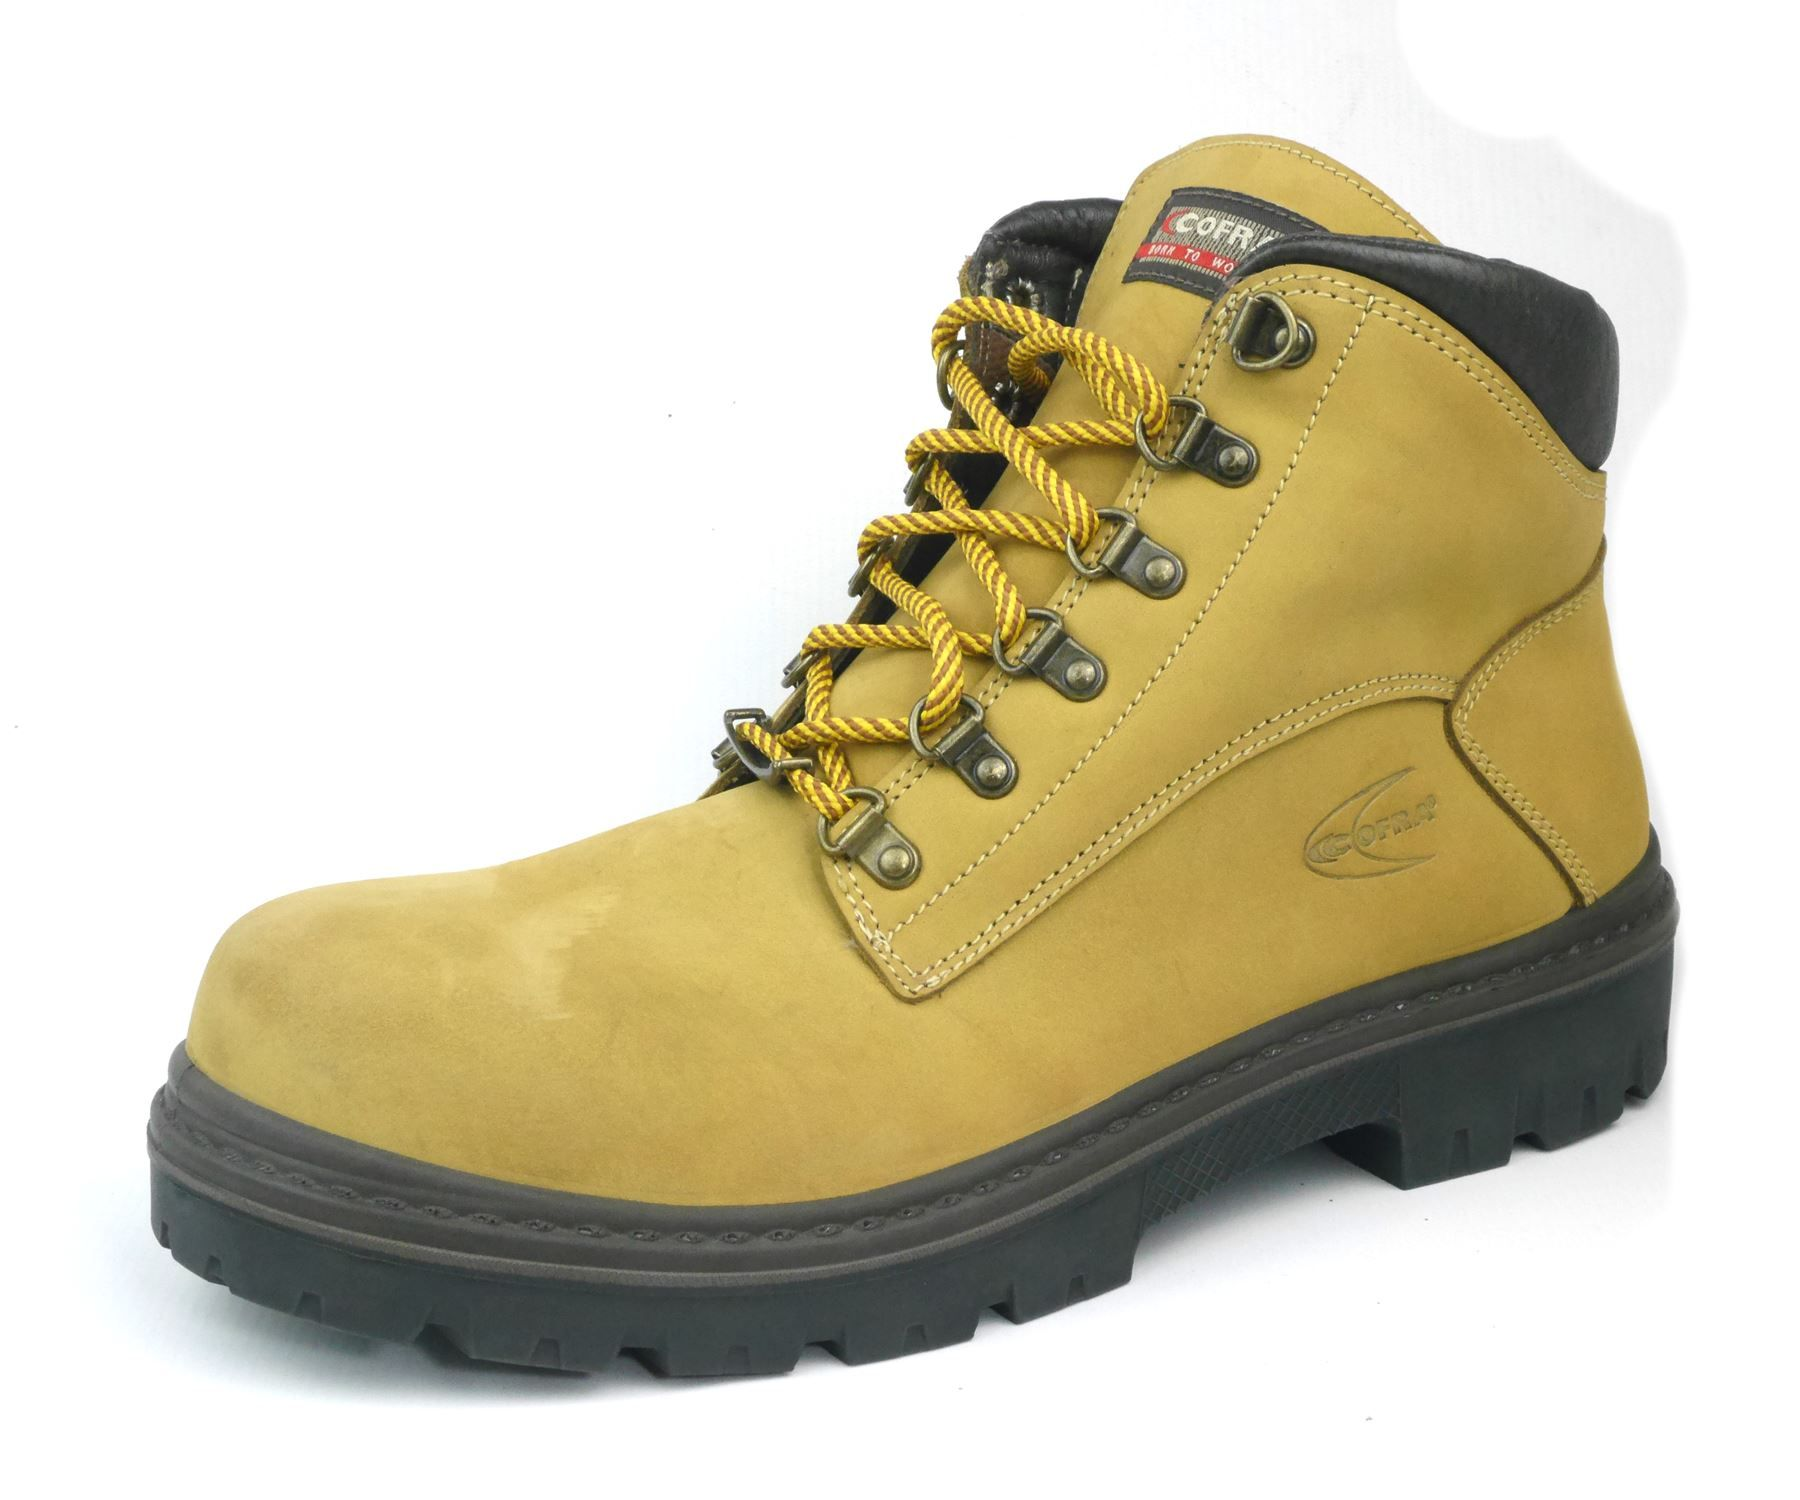 c20954839ee Cofra Asuncion S3 Safety / Work Tan Boots